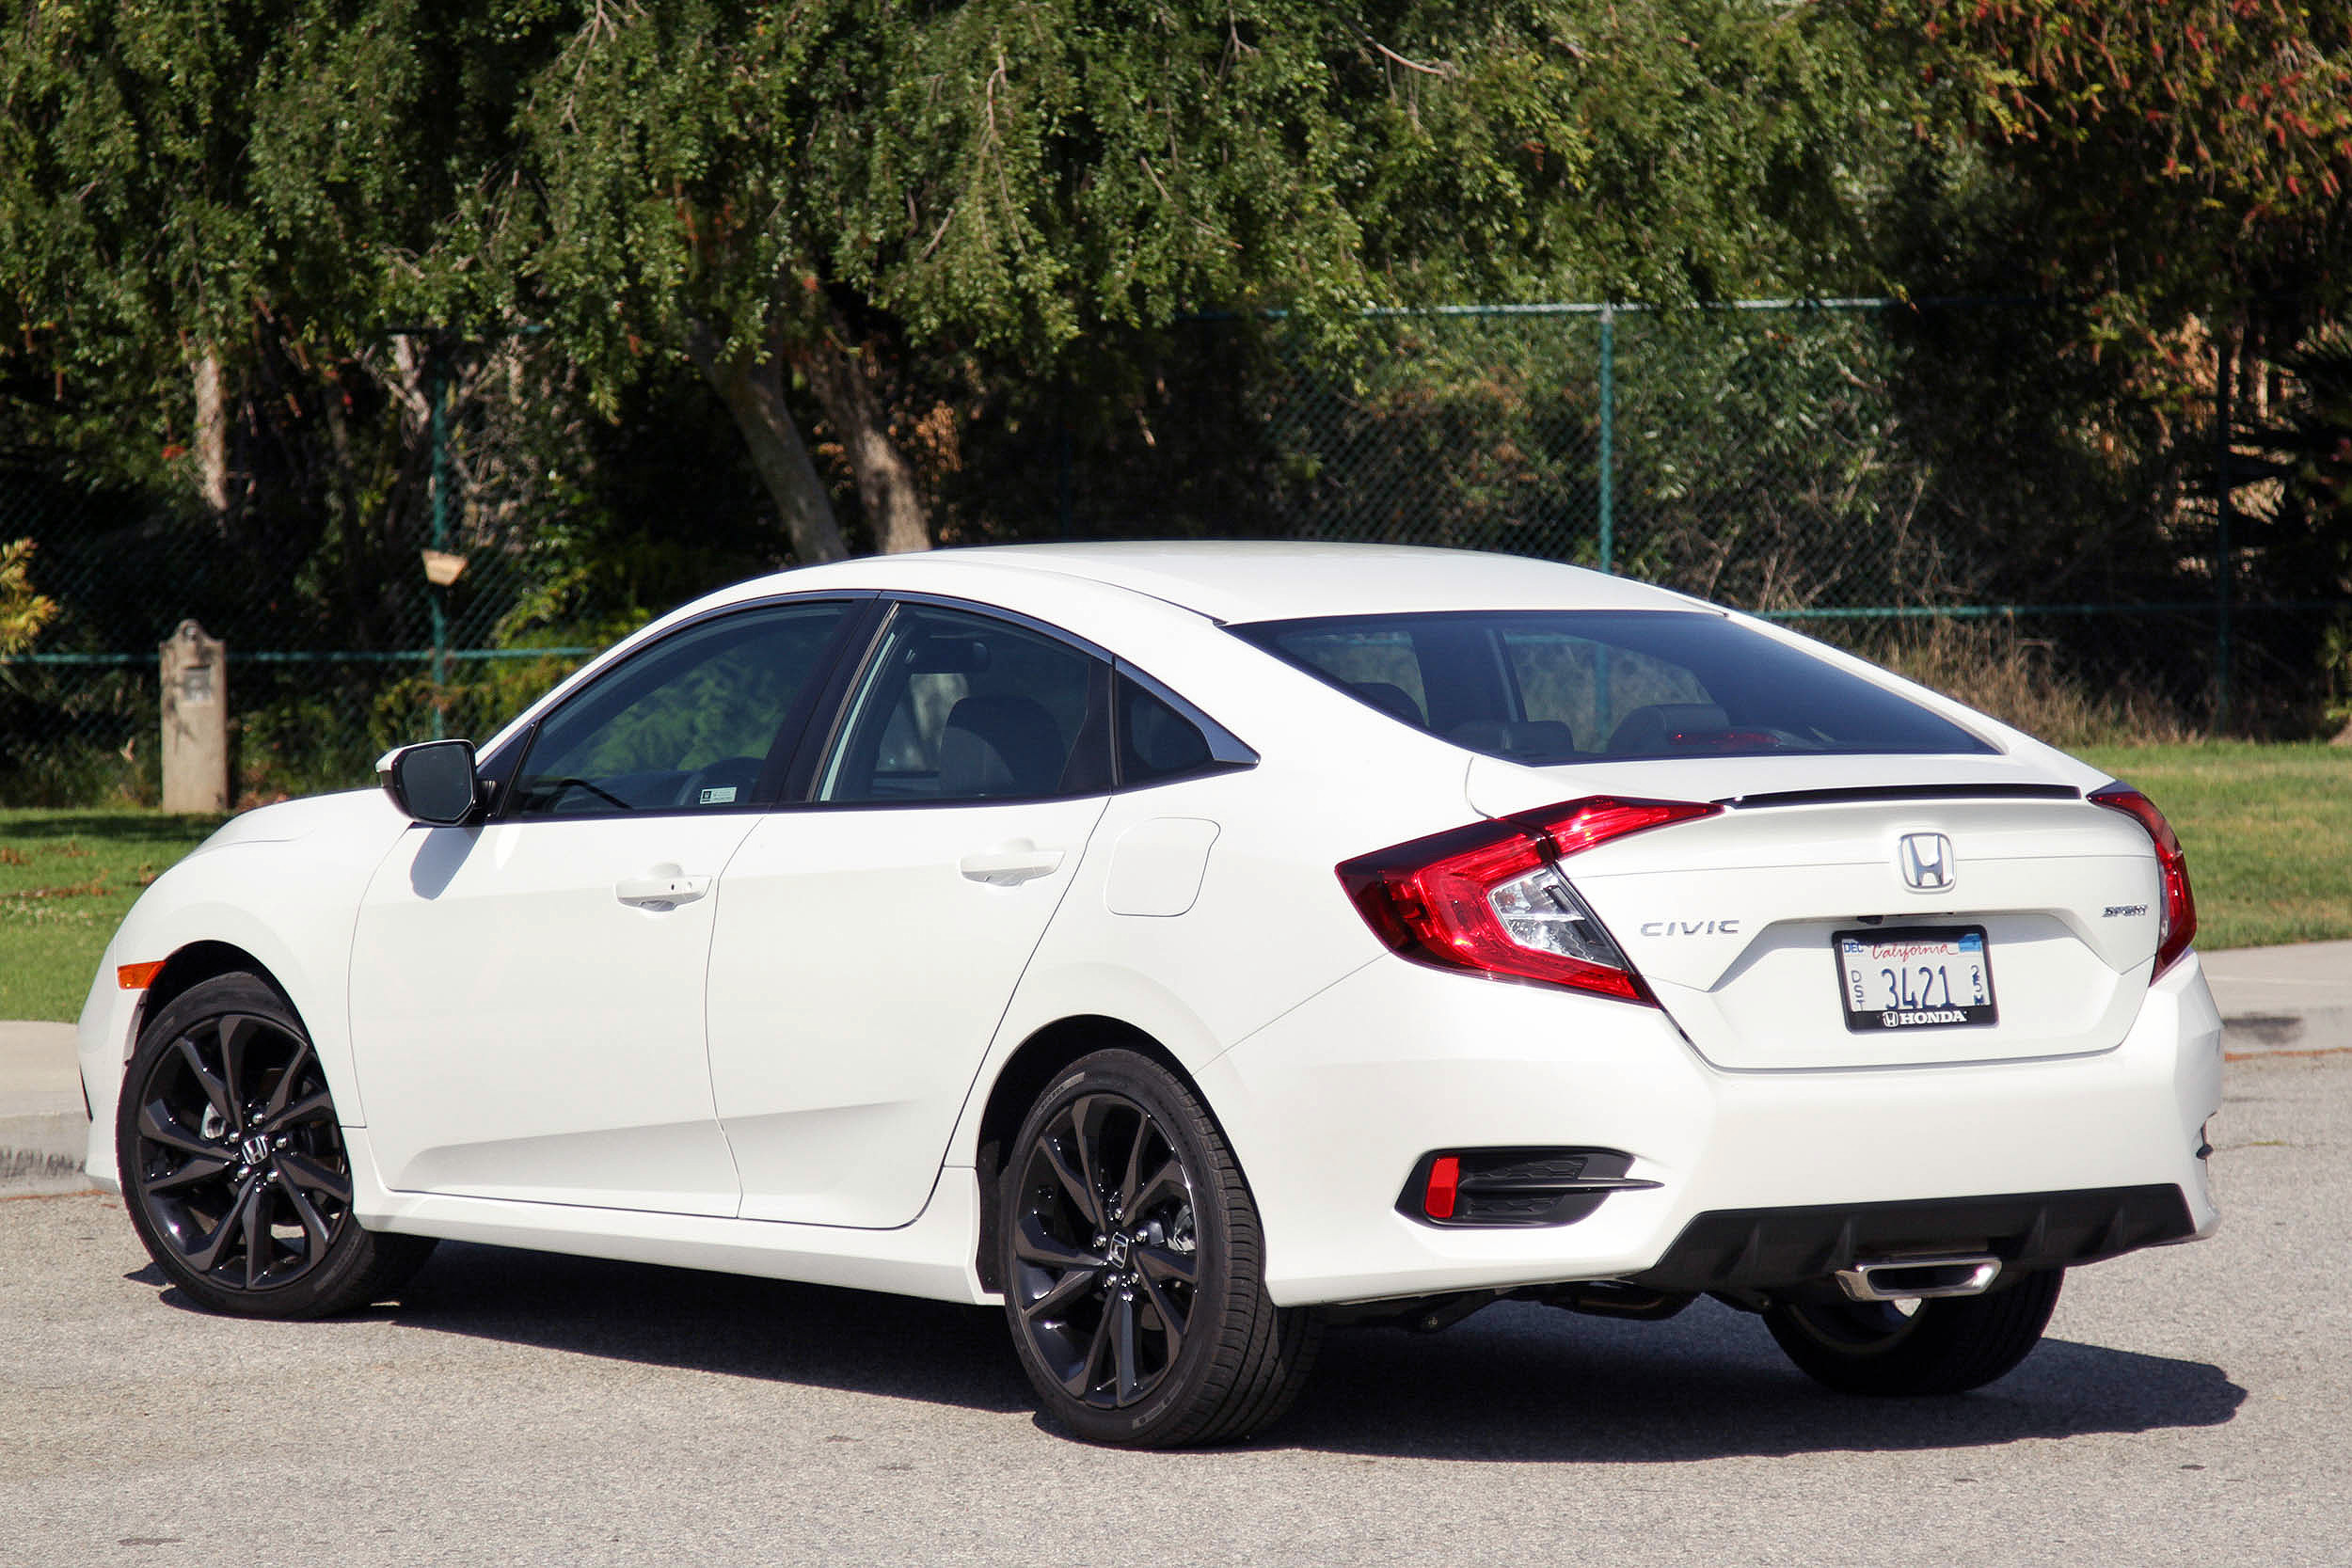 2019 Honda Civic Sport Sedan Review | Specs, photos, and driving